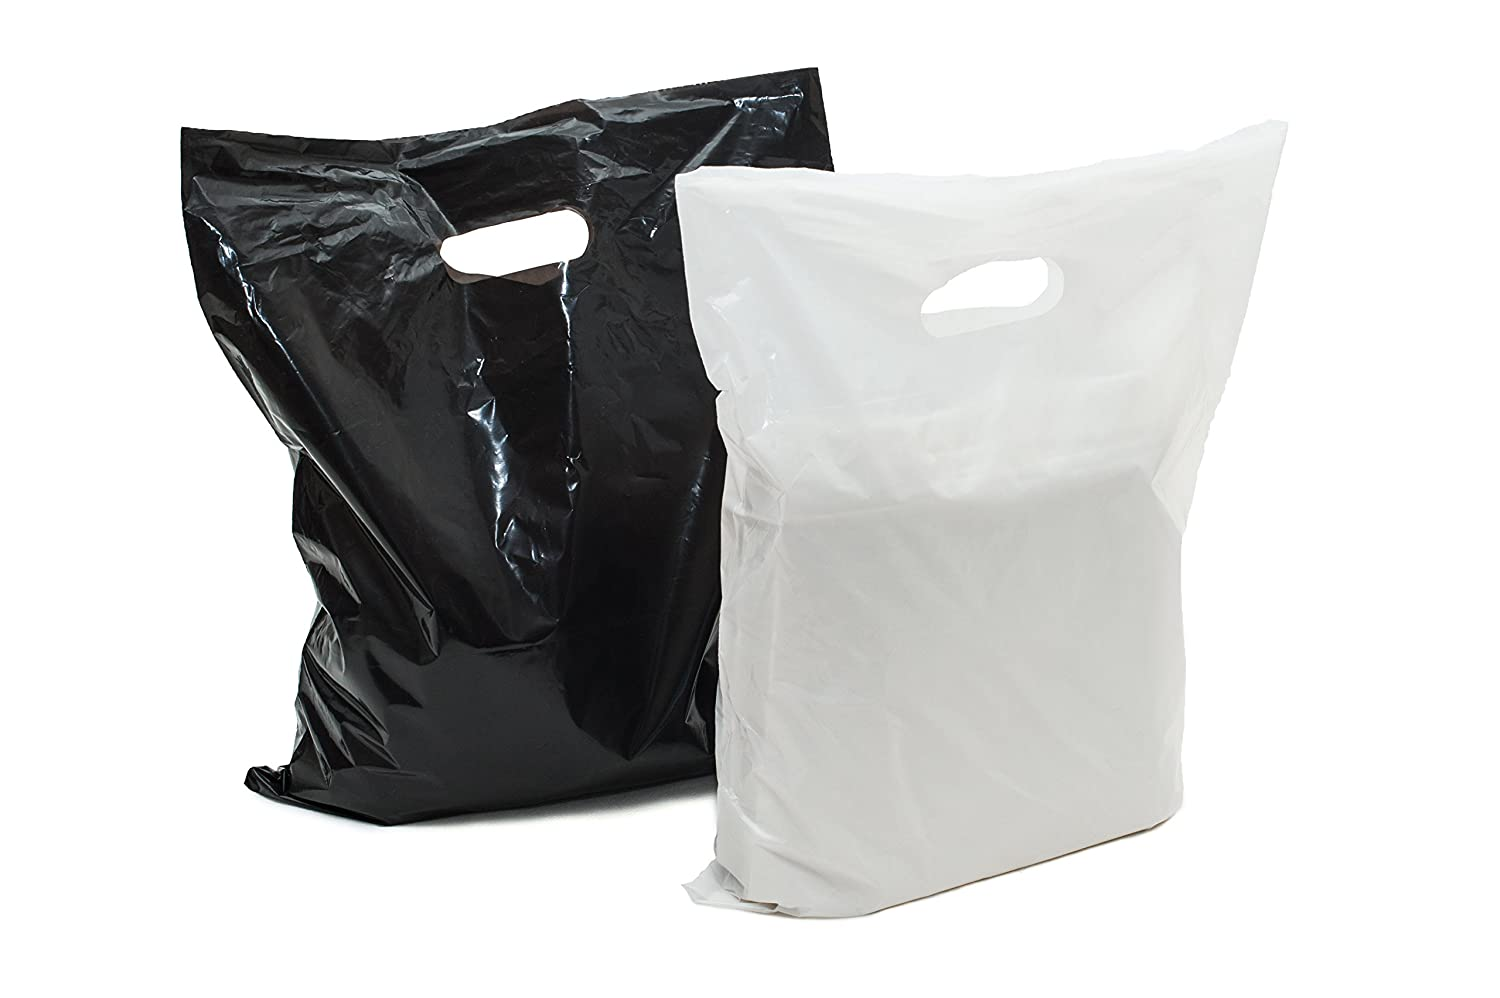 Merchandise Bags 16x18: 100 Black and White 16x18